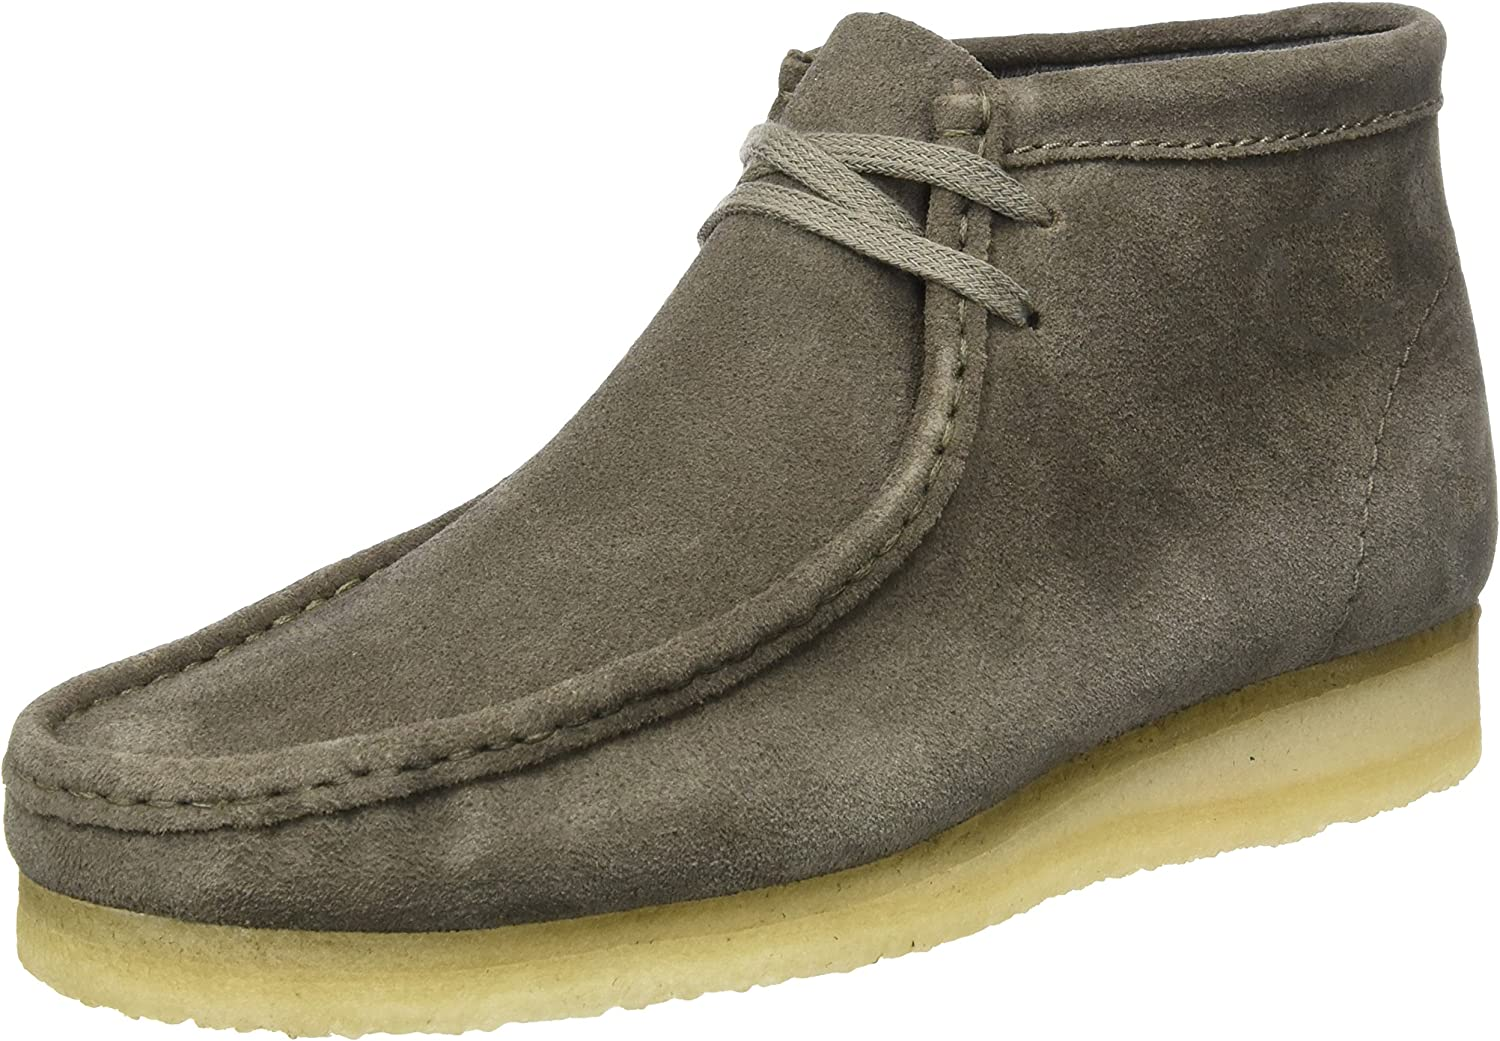 Clarks Originals Wallabee Boot - Grey Suede Mens Boots